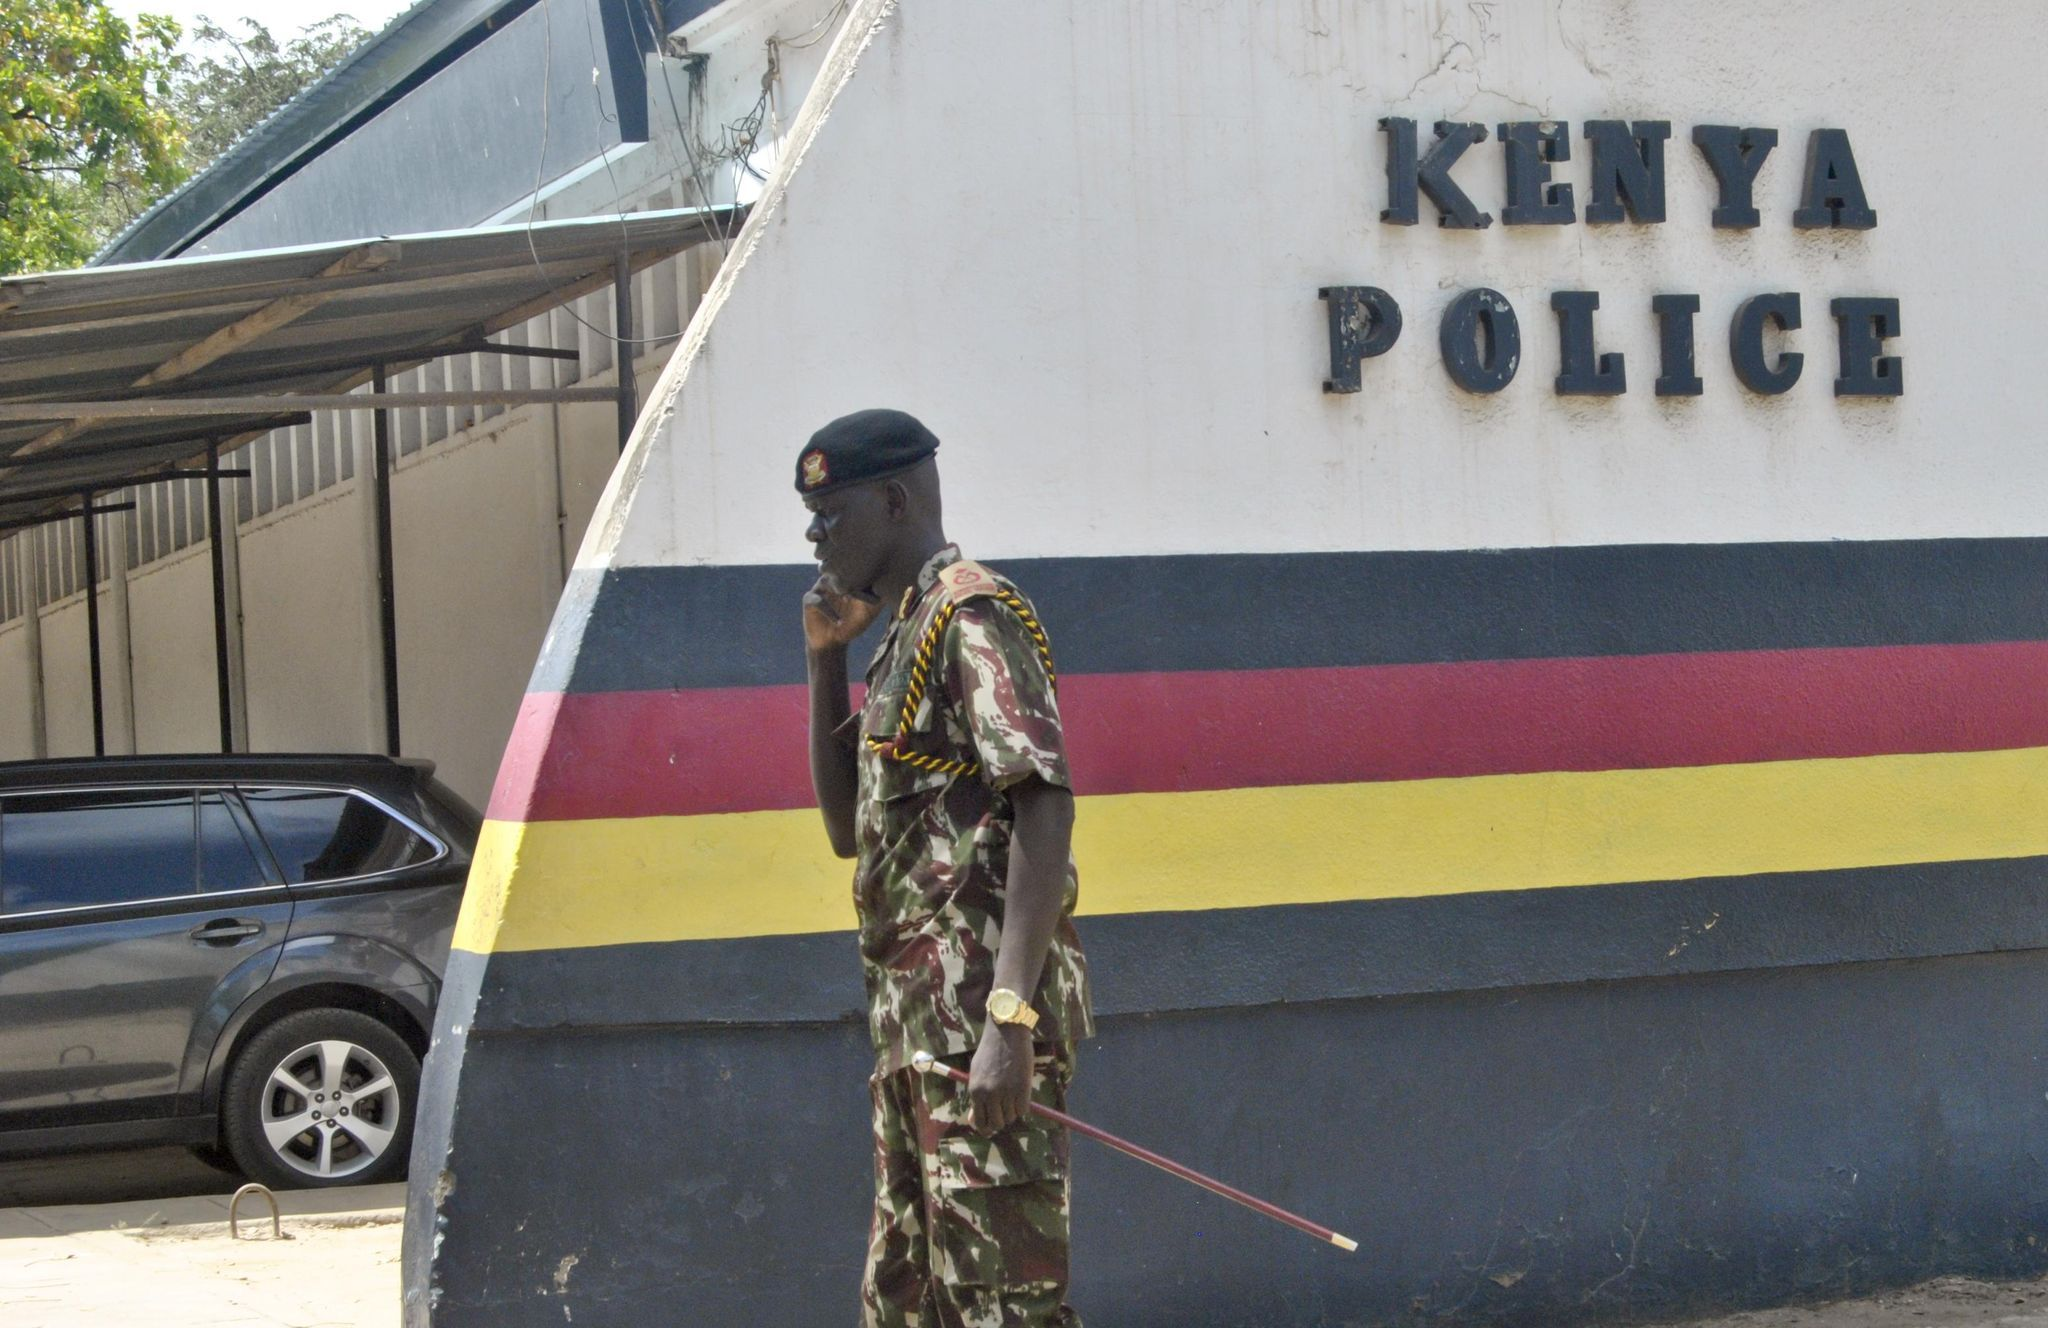 Kenyan Police Optimistic About Finding Kidnapped Italian